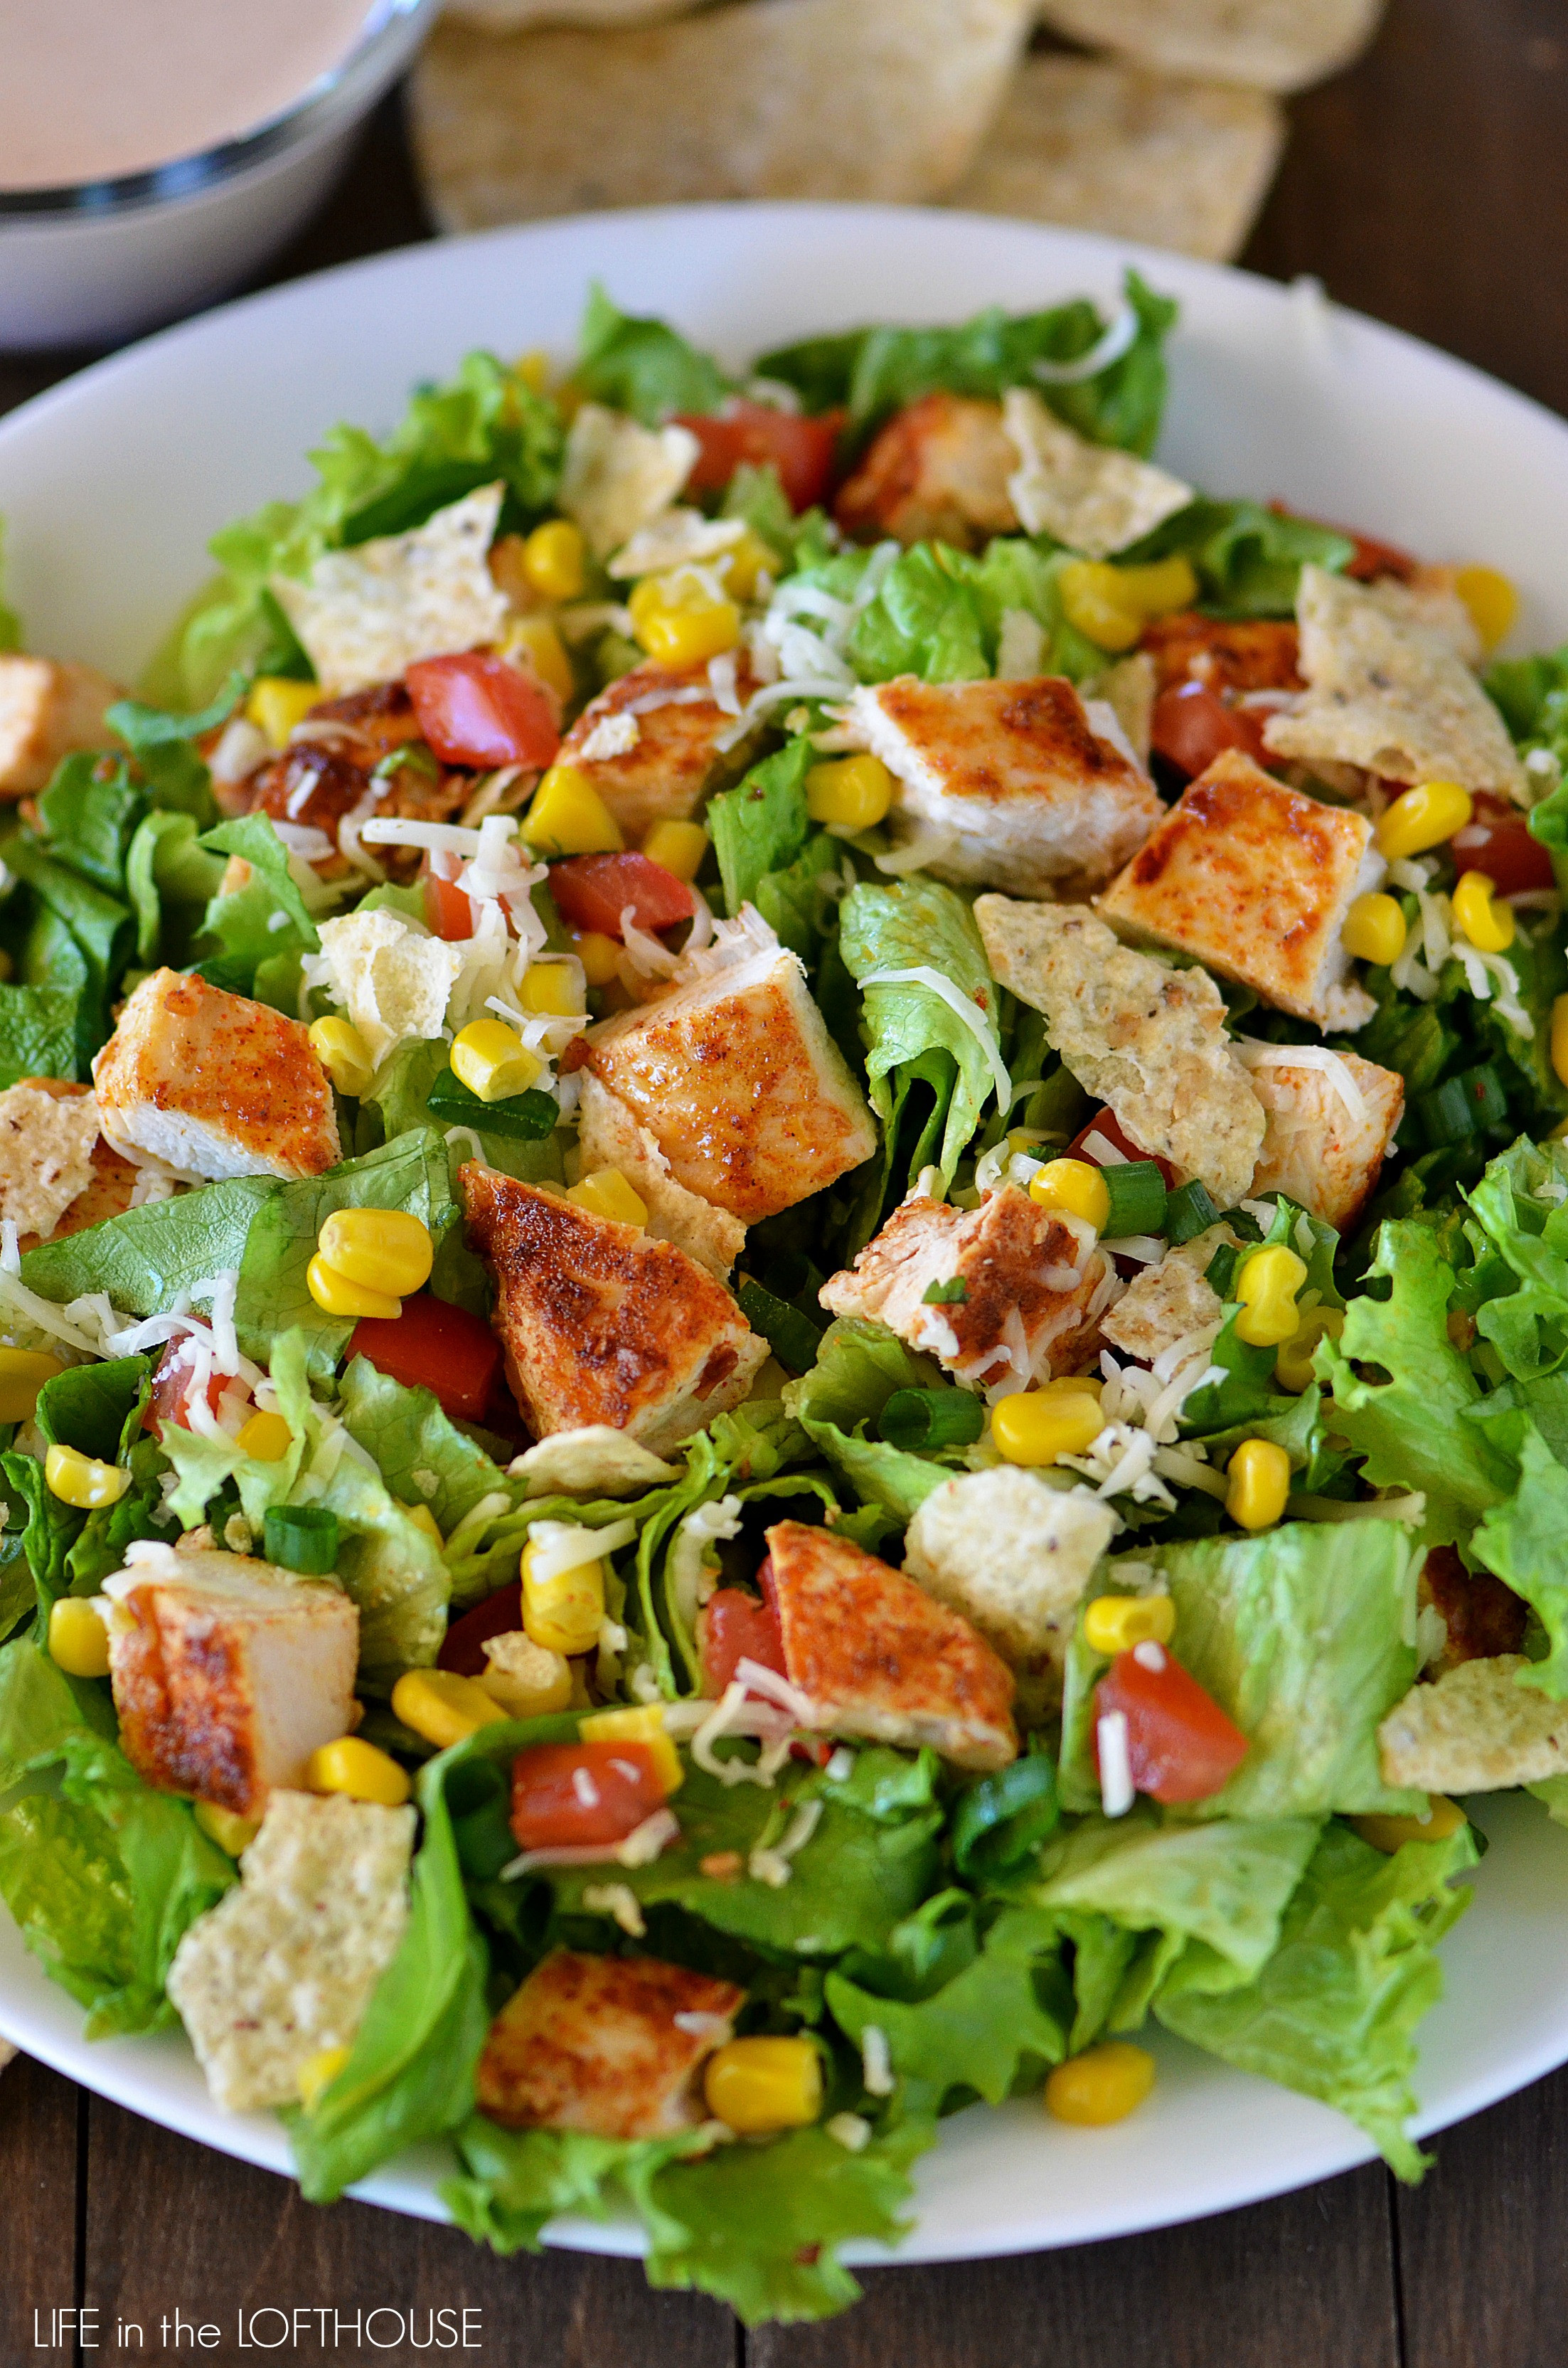 Is Chicken Salad Healthy  Chicken Taco Salad Life In The Lofthouse